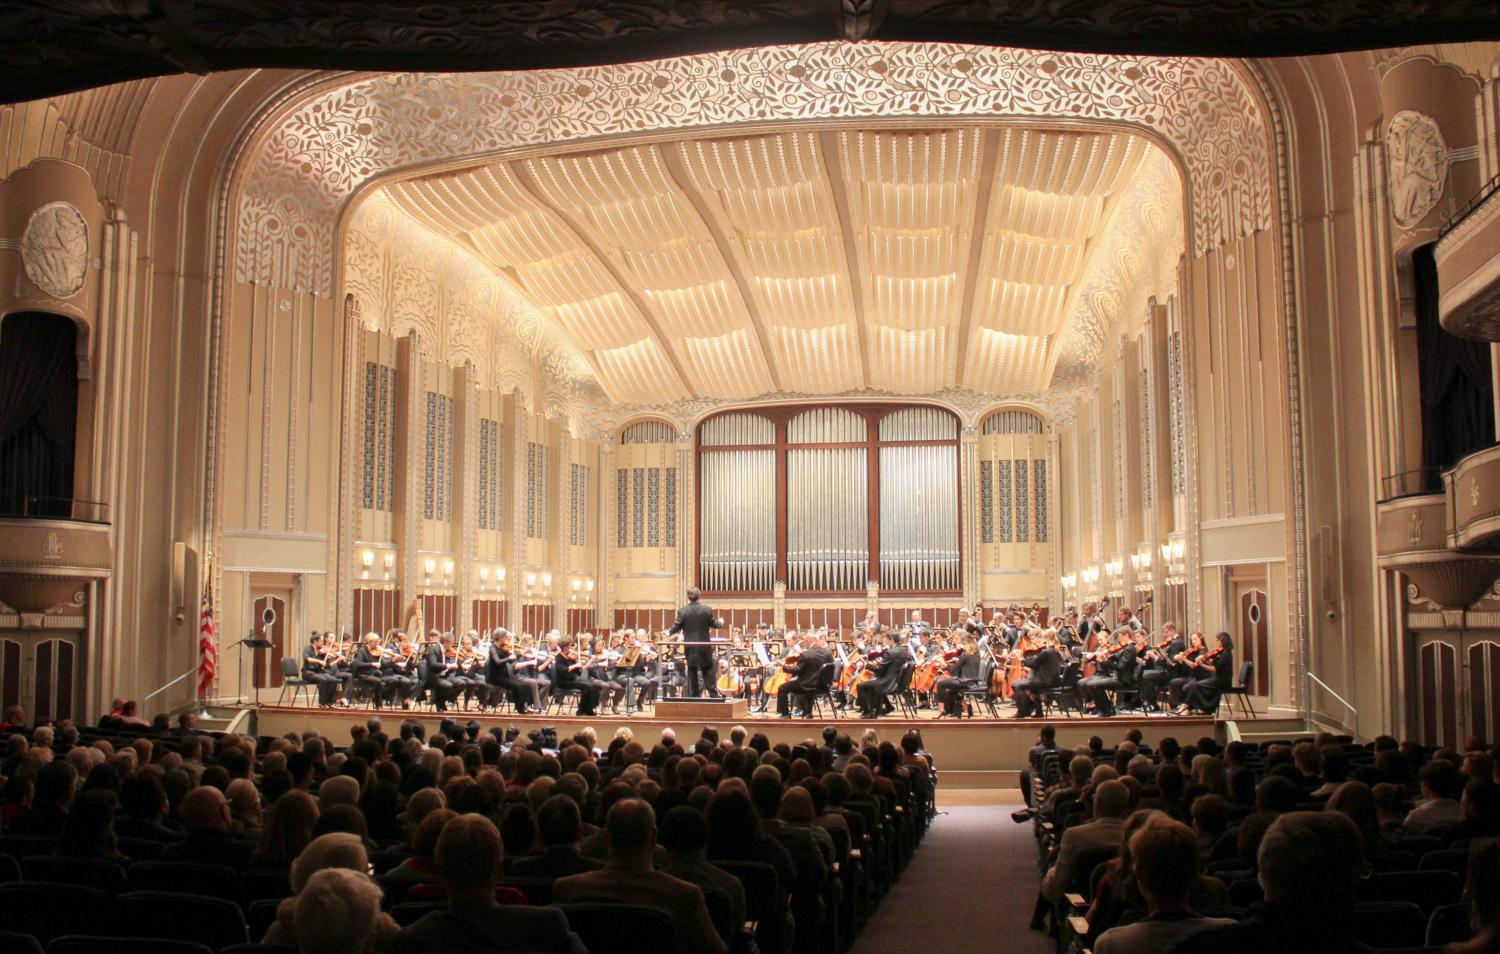 Oberlin Conservatory students and faculty members joined musicians from the Cleveland Orchestra, Cleveland Institute of Music, and Credo Music to play a benefit concert in Cleveland's Severance Hall to raise funds for hurricane relief.